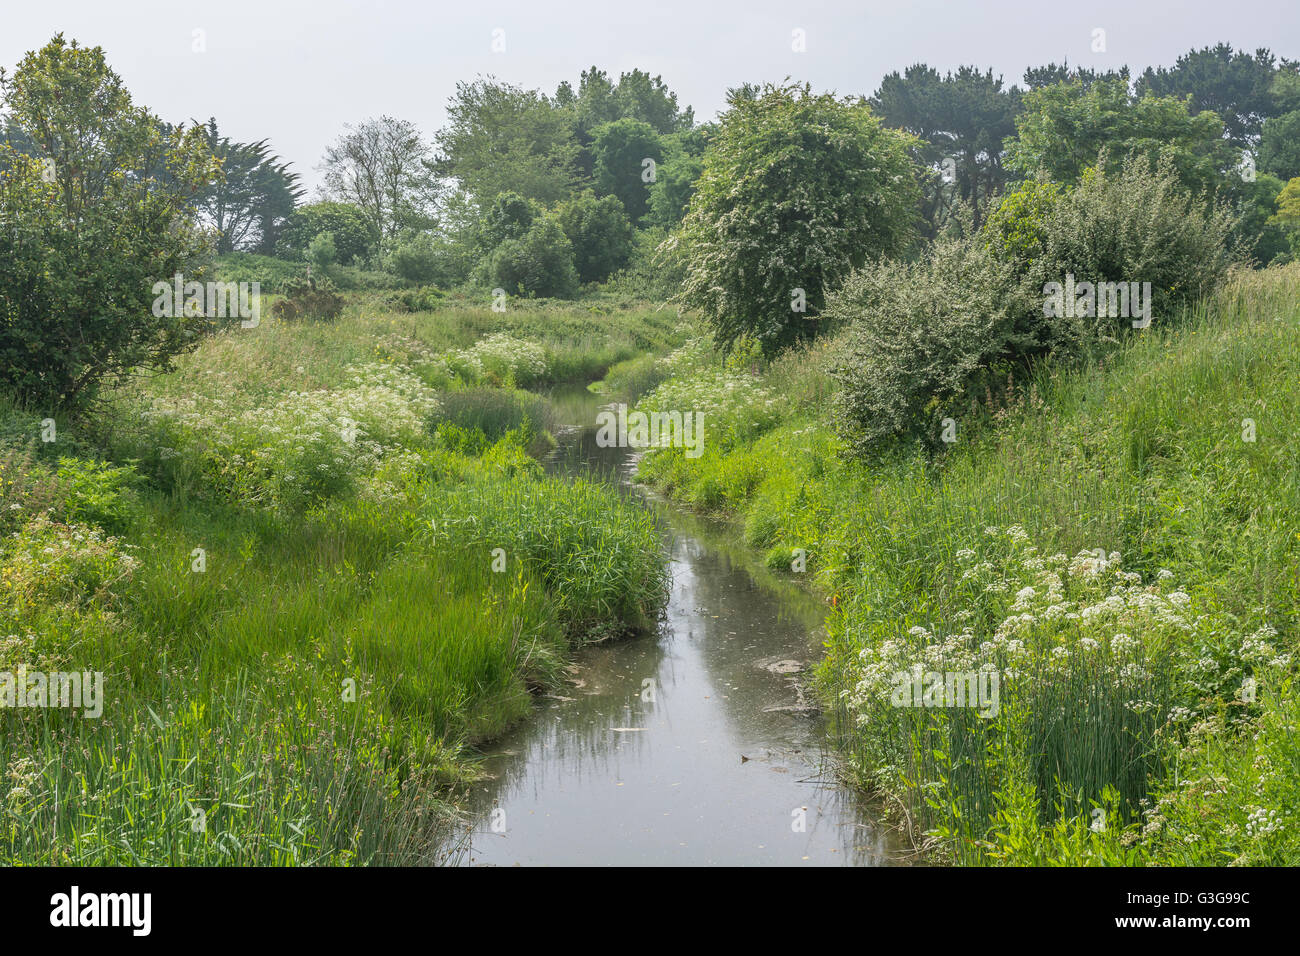 Drainage ditch filled with static water, showing clumps of poisonous water dropwort (Oenanthe crocata) by the water's - Stock Image